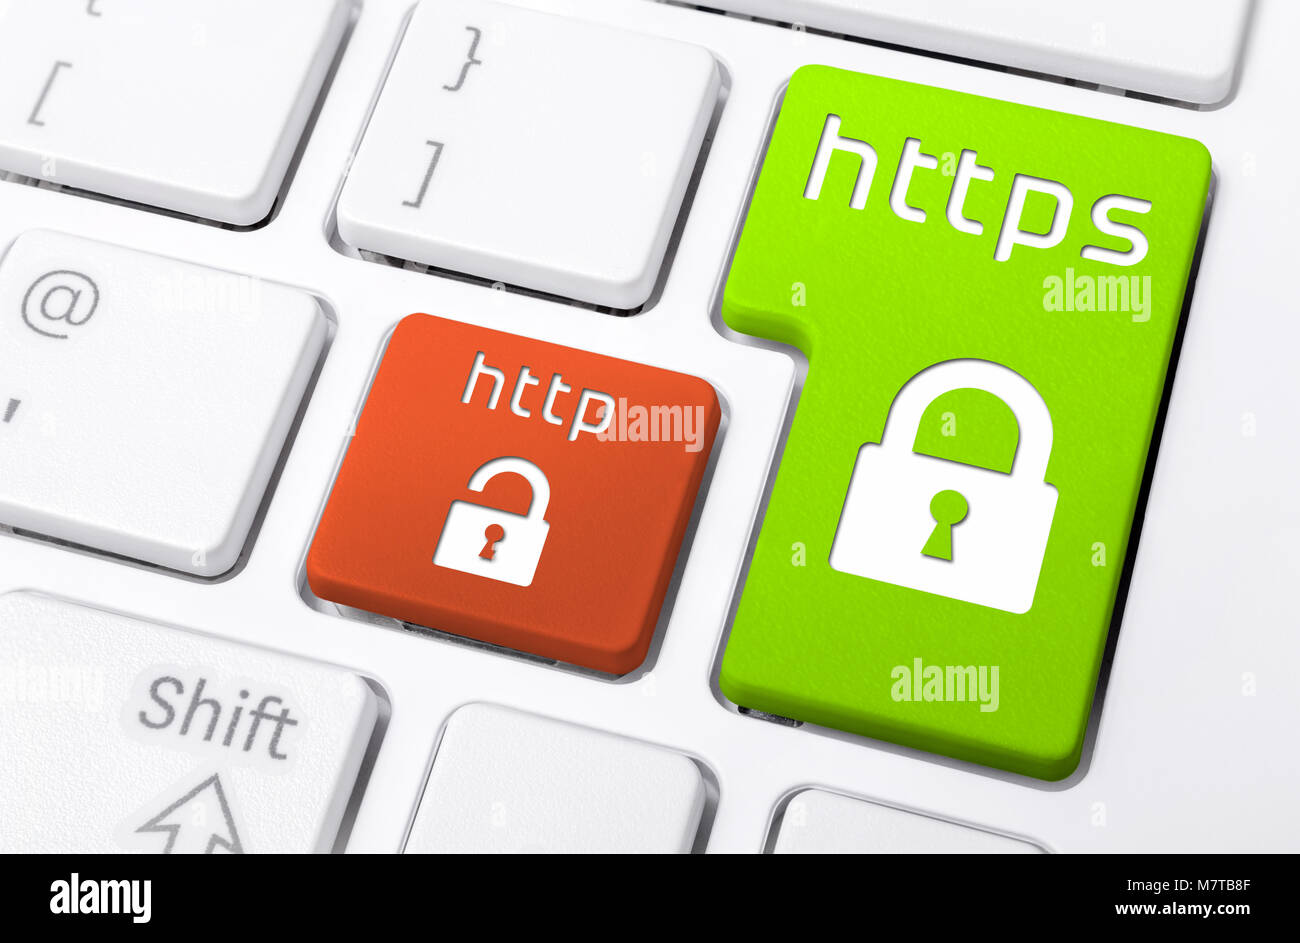 Close Up Of A Keyboard With HTTPS and HTTP Buttons With Lock Icons - Stock Image